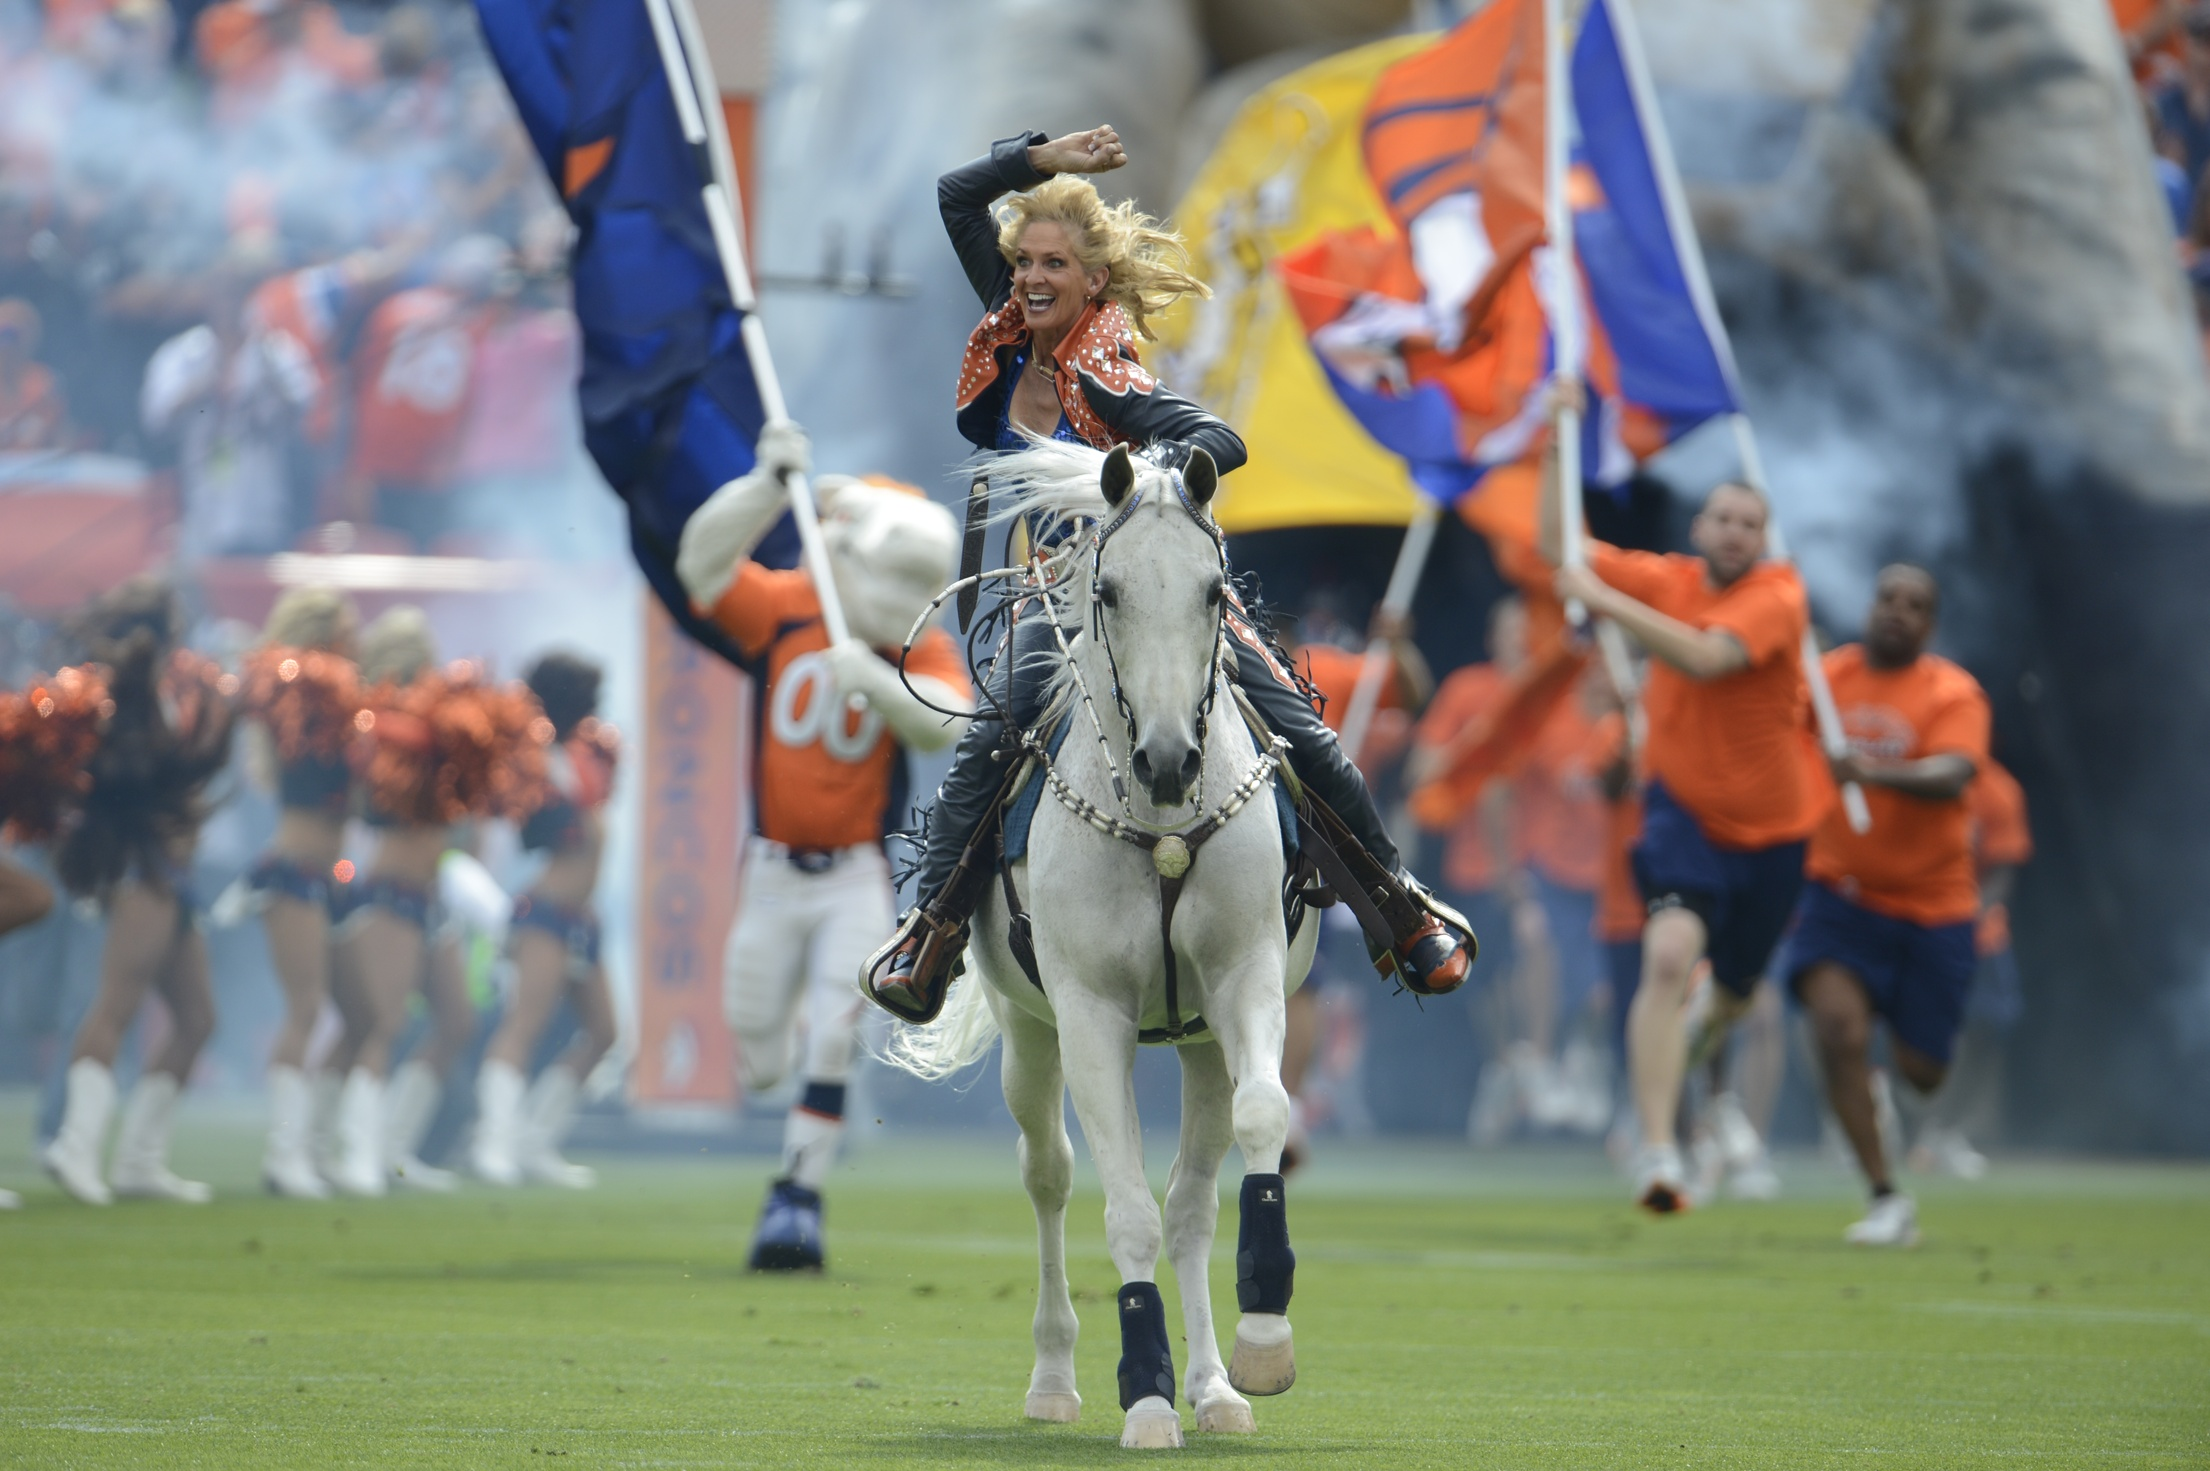 20140130hDPpettales0201mag Ann Judge-Wegener rides Thunder onto the field before the start of a Denver Broncos game.